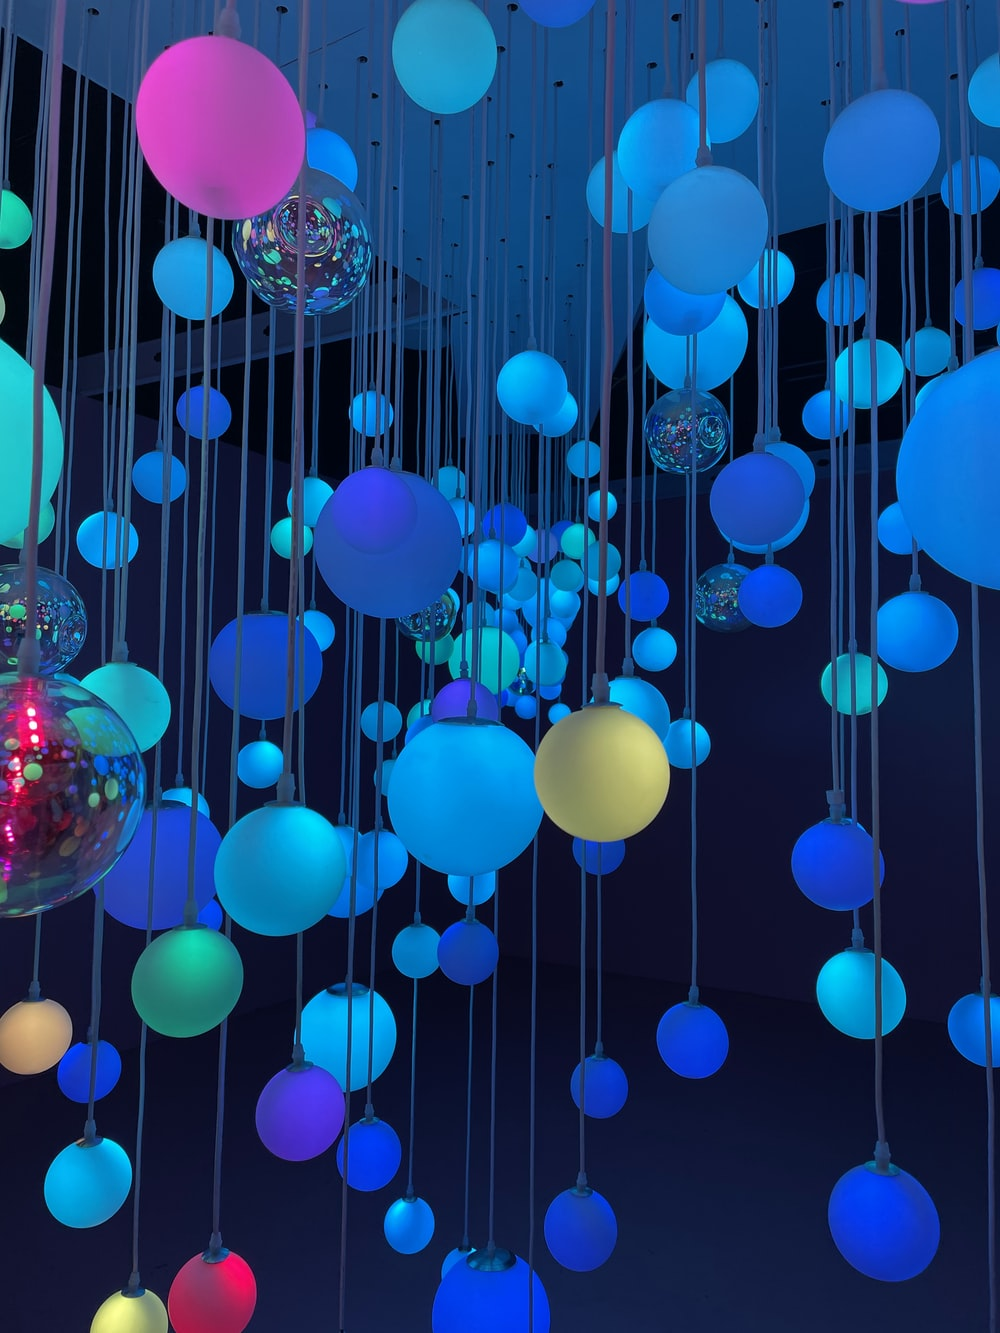 blue and pink balloons with water droplets